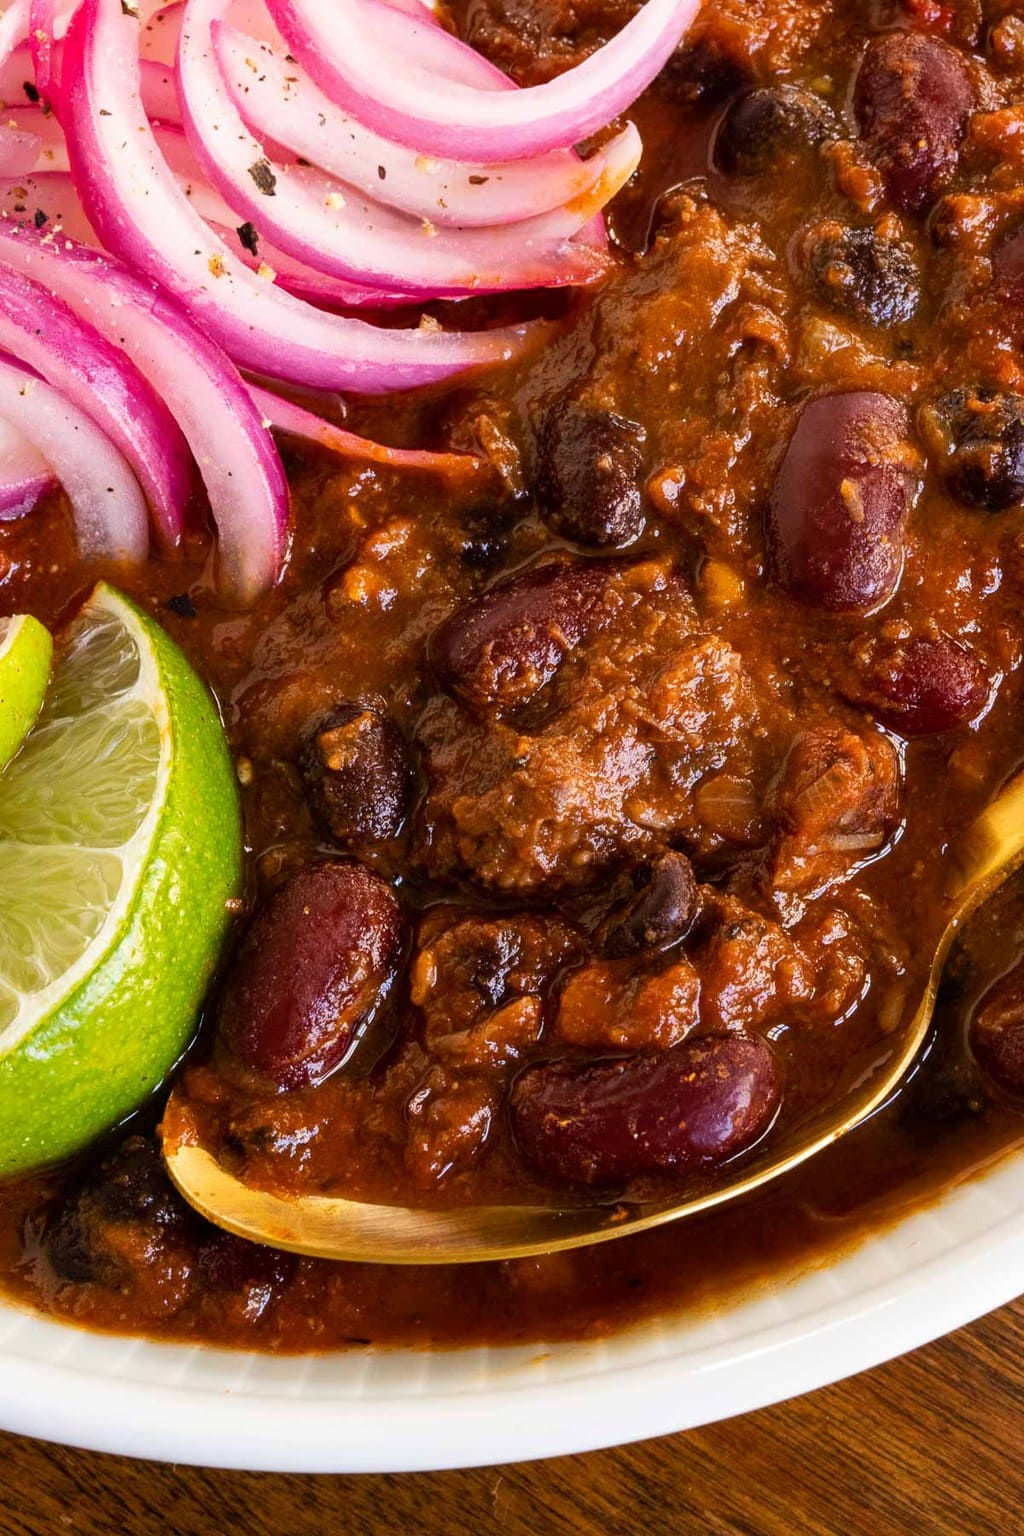 Ultra closeup photo of Slow Roasted Short Rib Chili with pickled onions and lime wedges as garnishes.